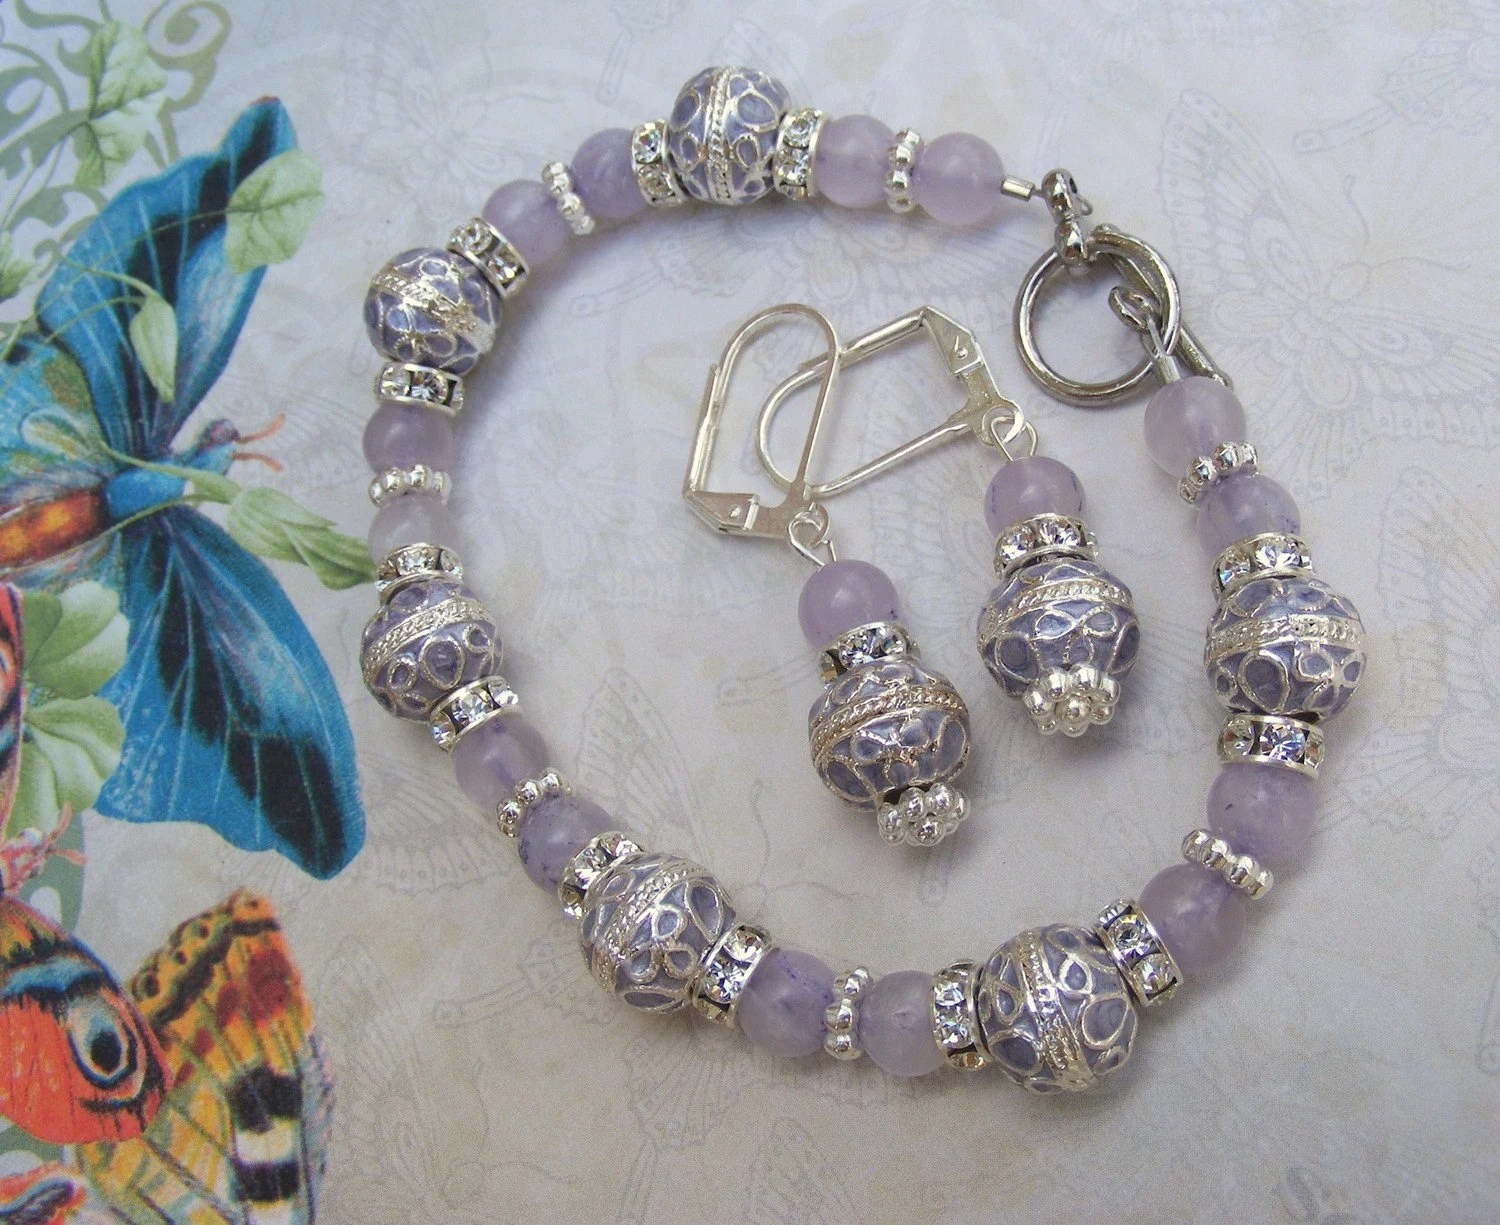 Lavendar Elegance Bracelet and Earrings